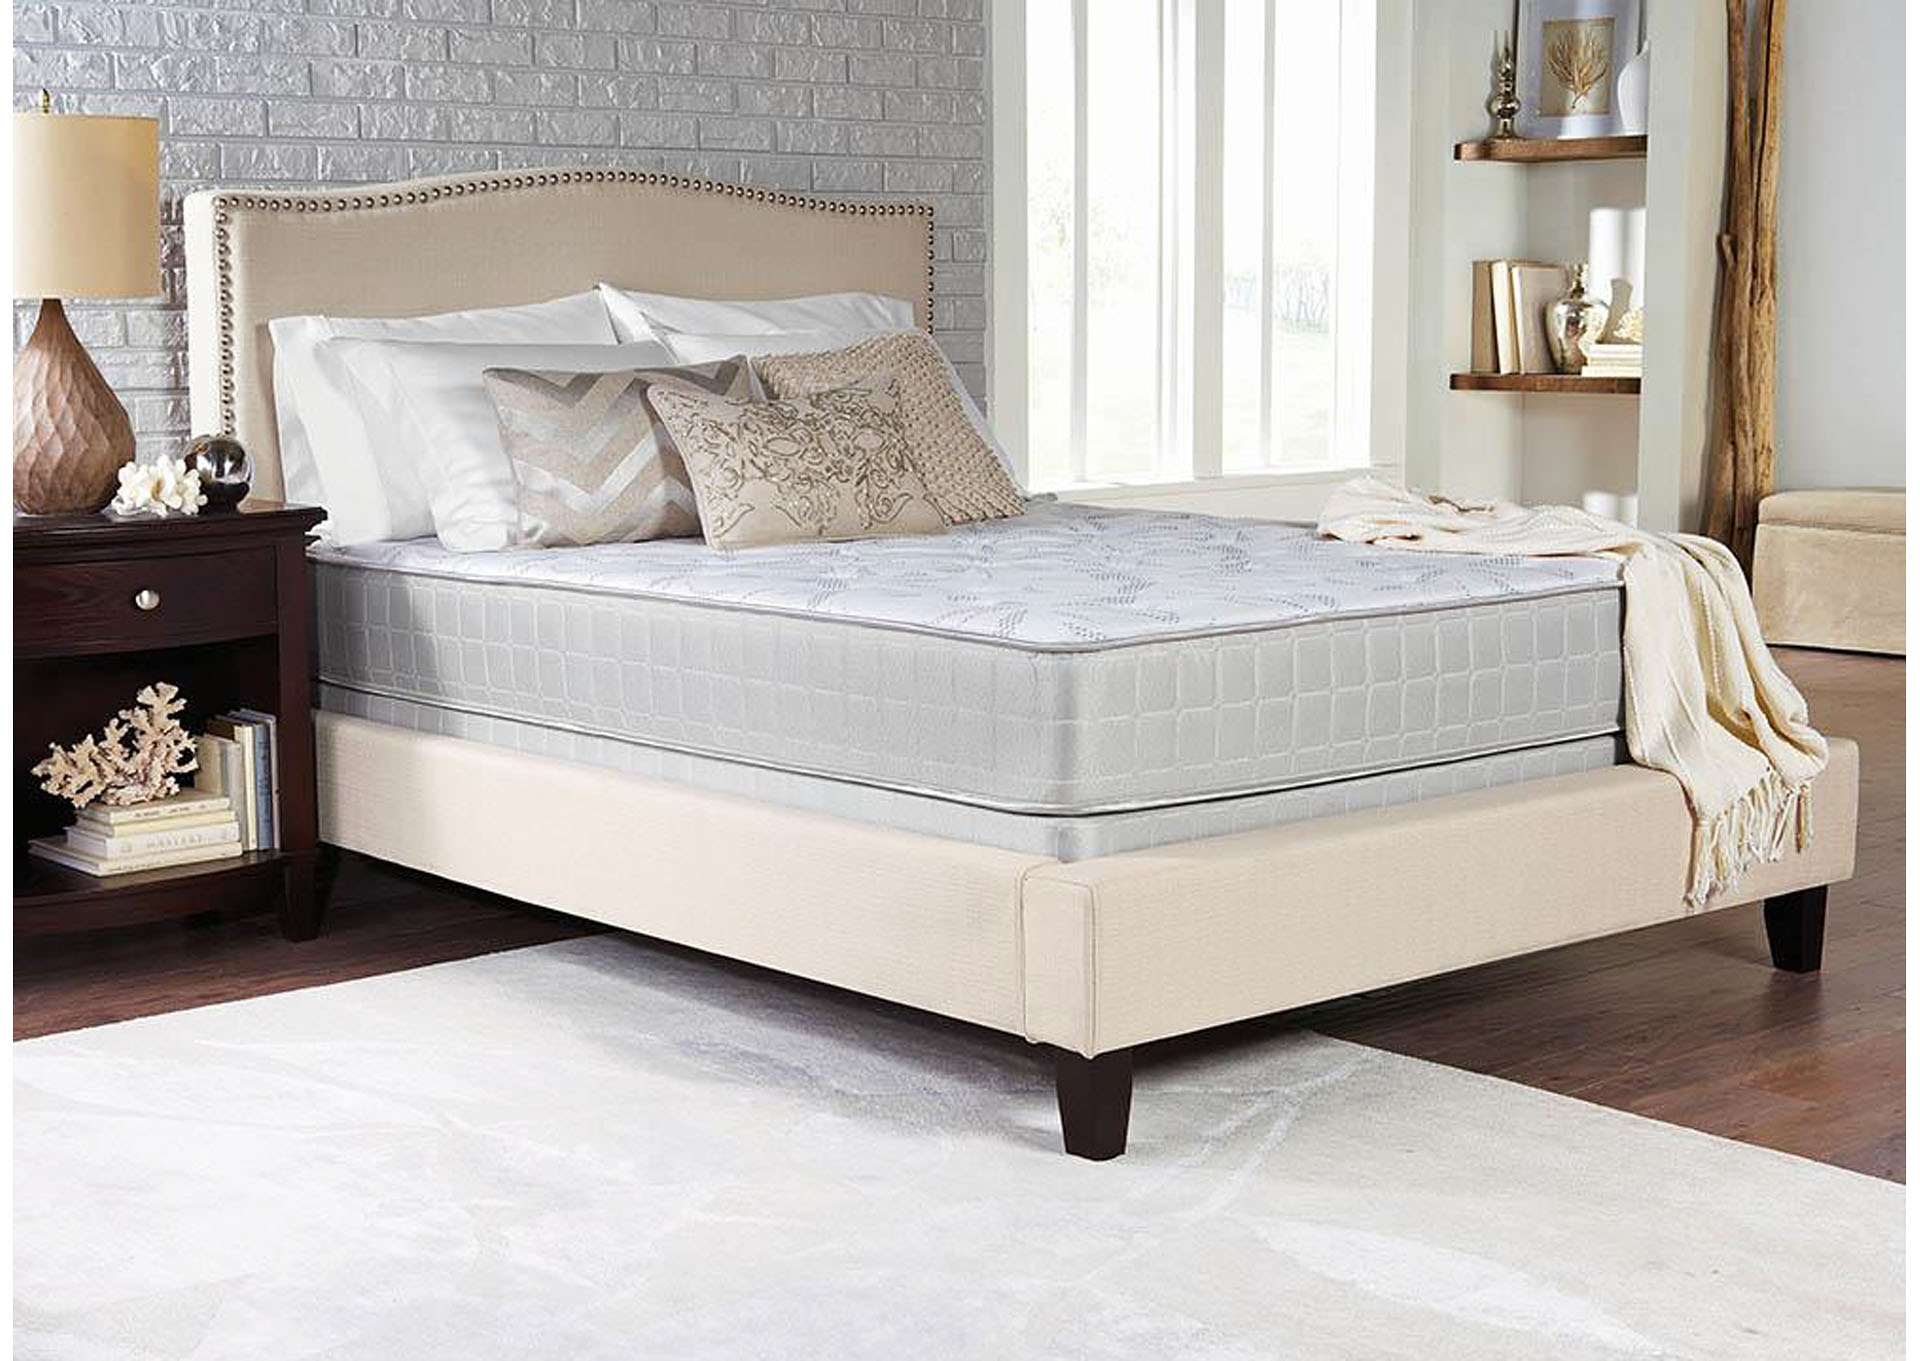 Crystal Cove Plush Full Mattress,Coaster Furniture